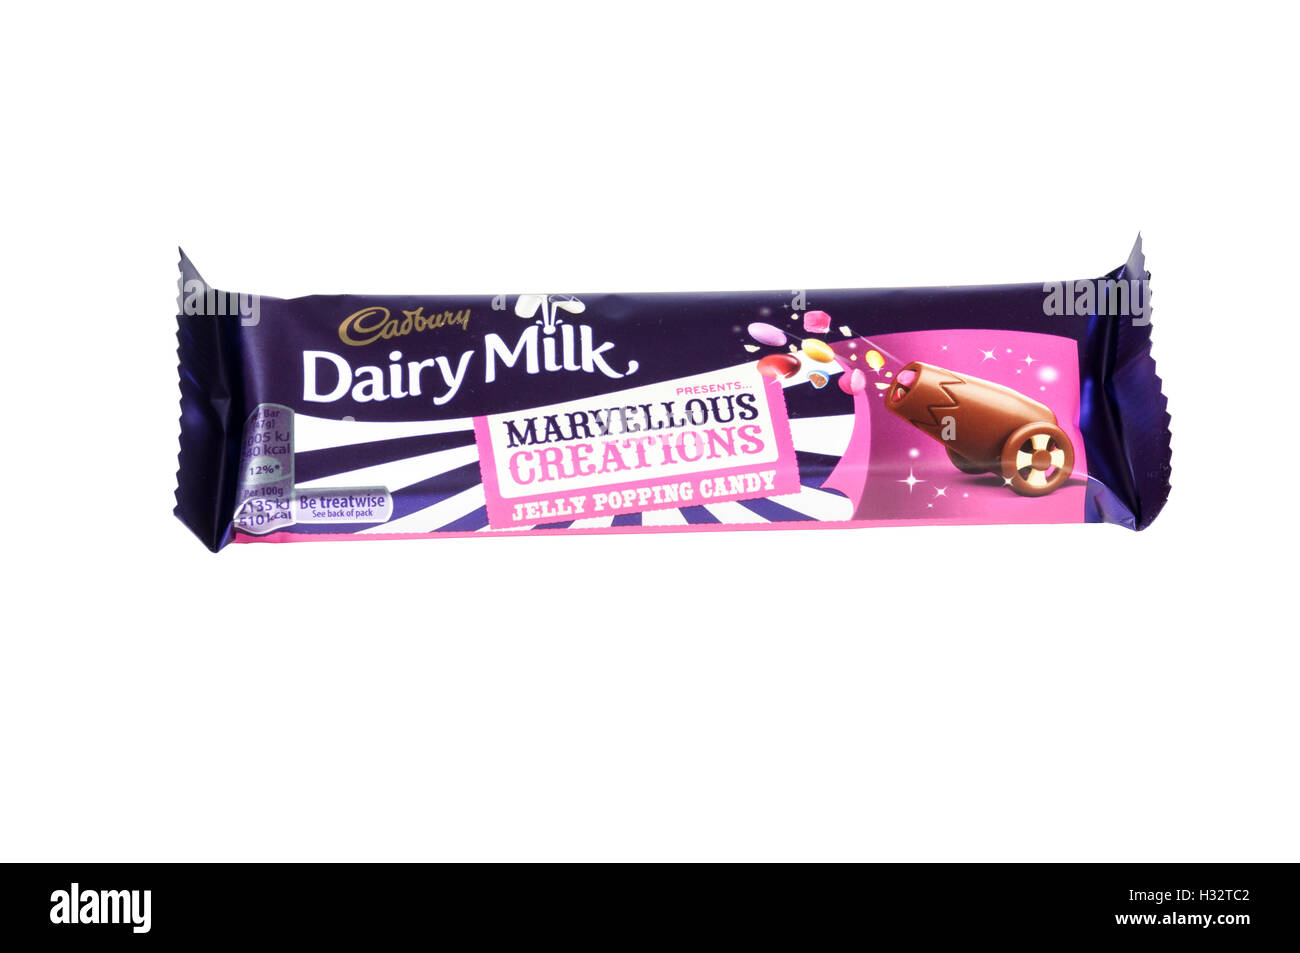 A Cadbury Dairy Milk Marvellous Creations Jelly Popping Candy chocolate bar. - Stock Image